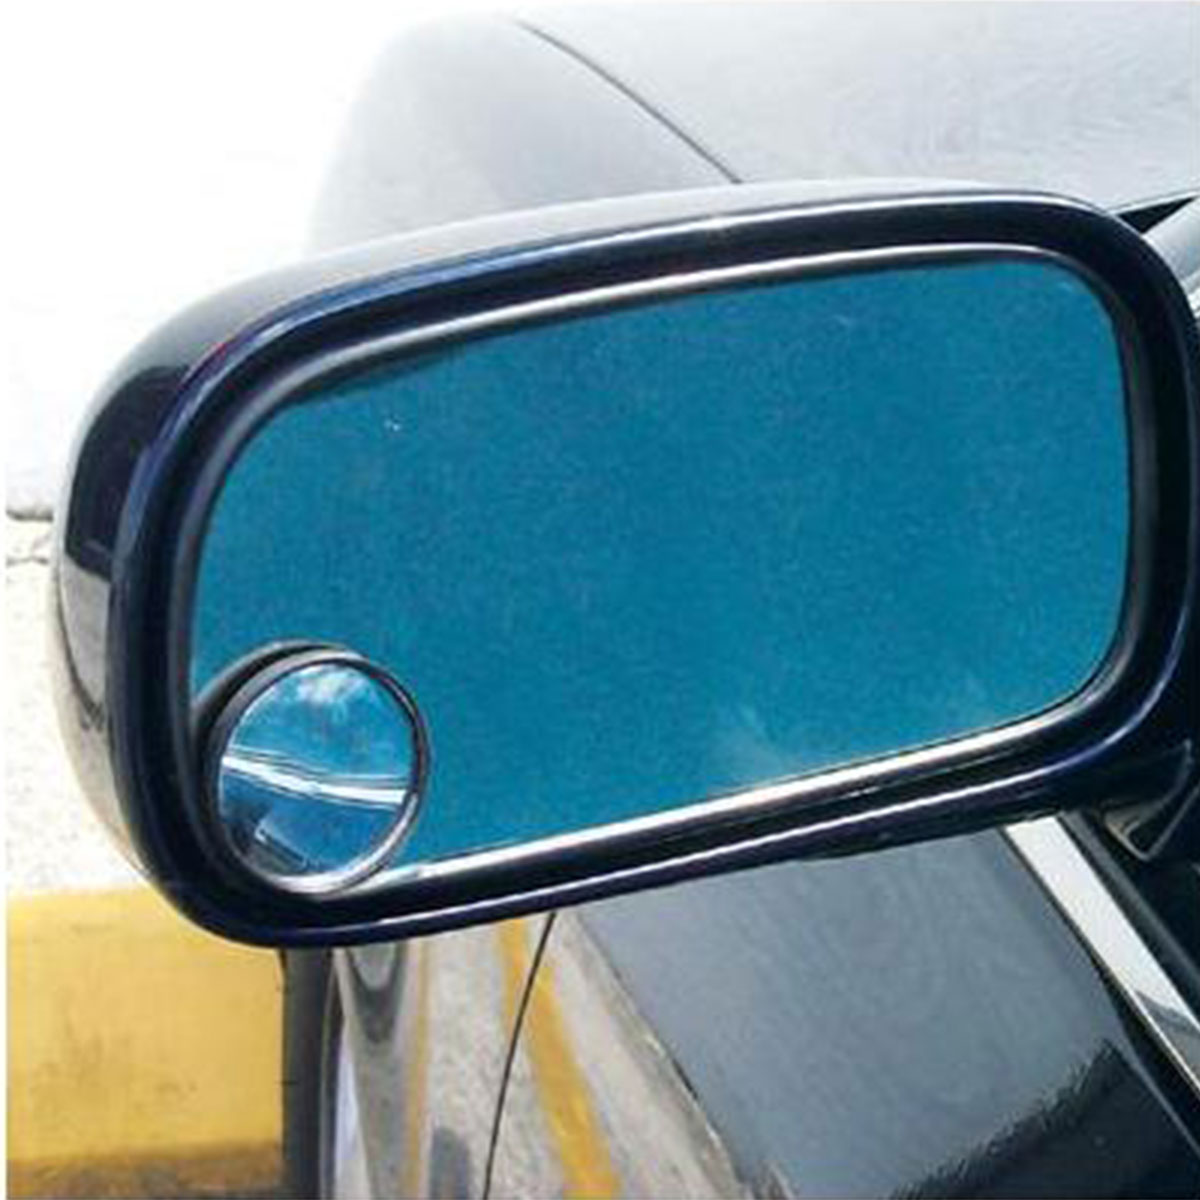 Convex blind spot mirror Hs